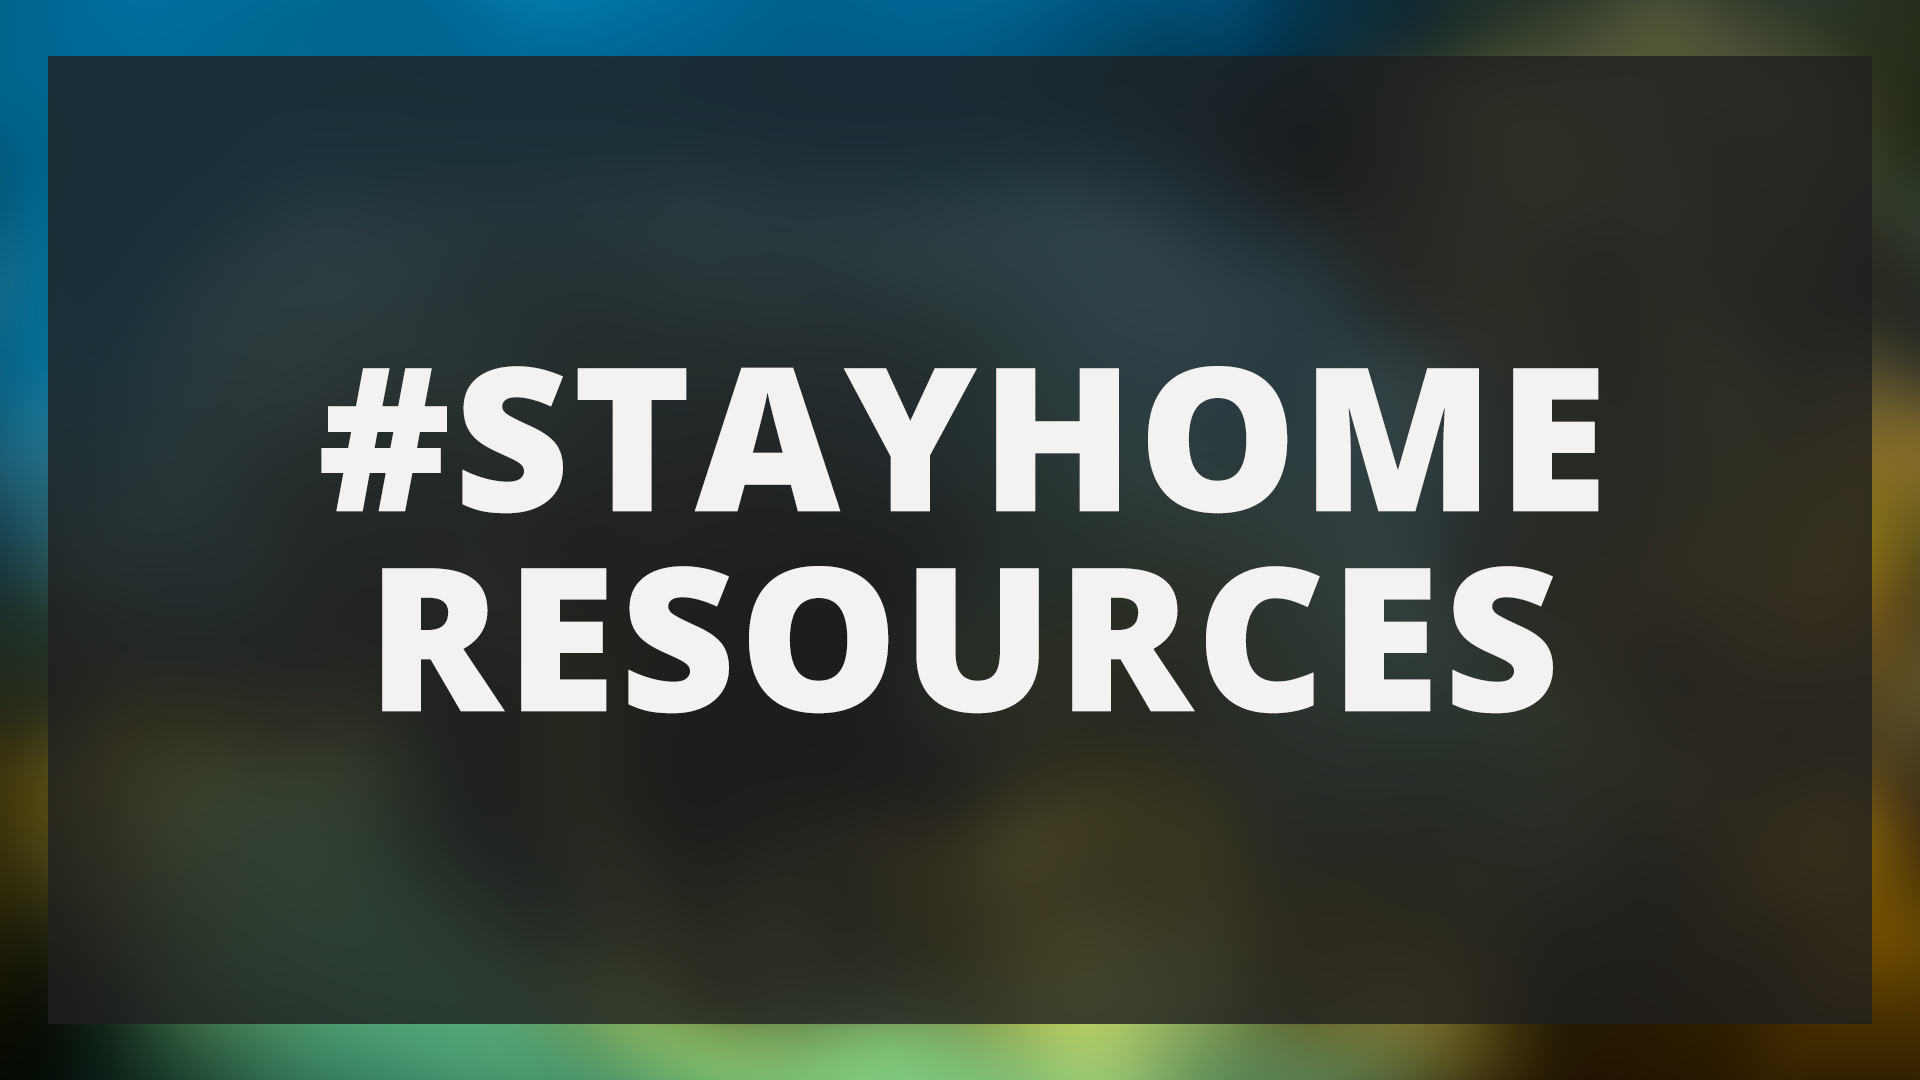 #StayHome Resources